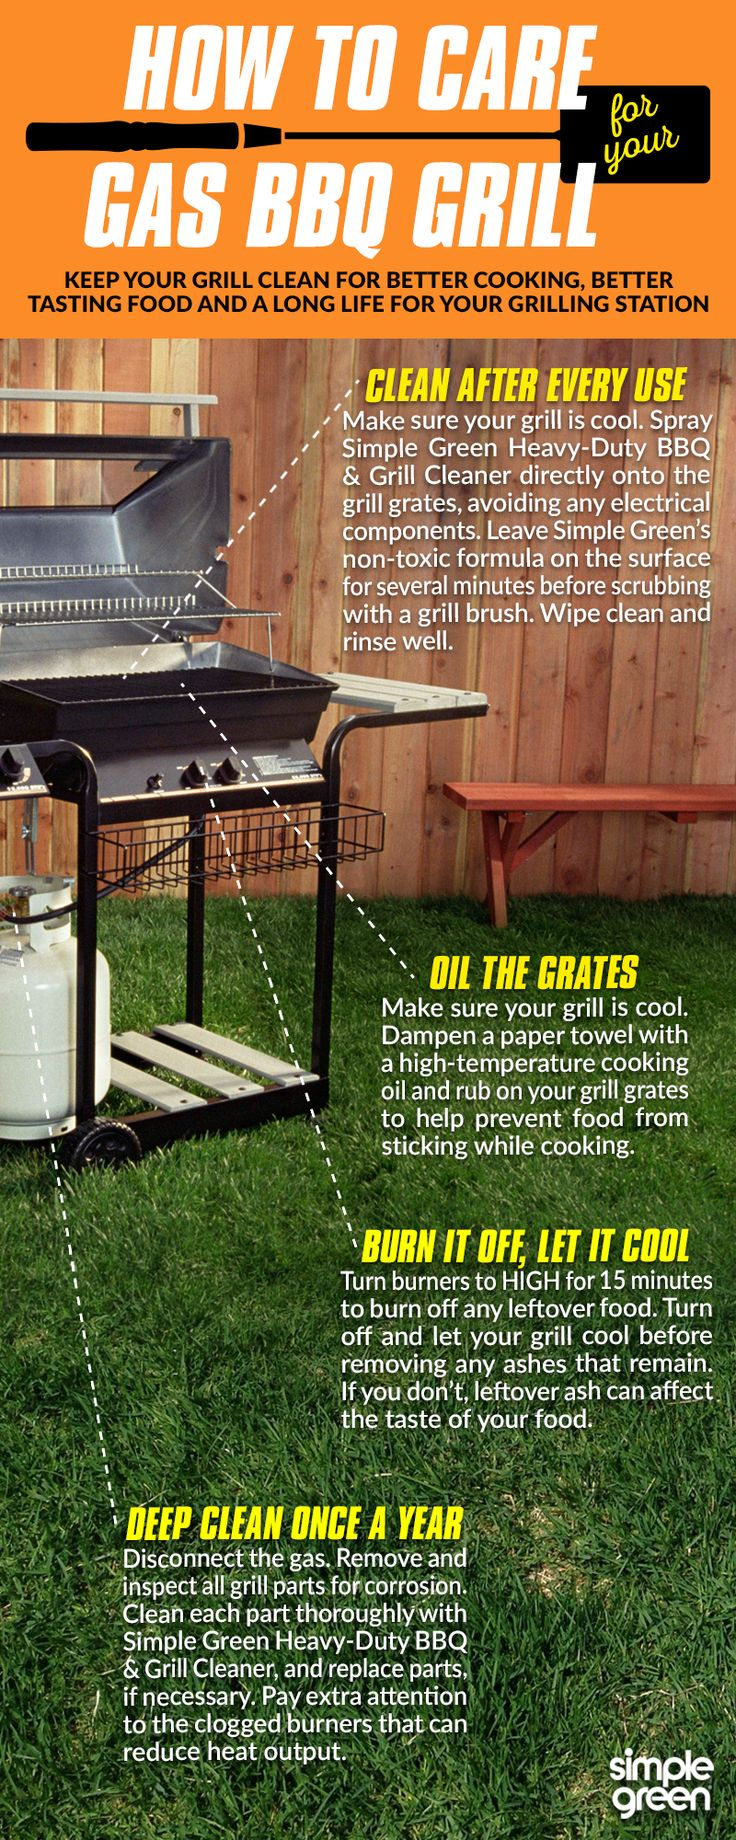 Keep your BBQ grill clean for better cooking, better tasting food and a long life for your gas BBQ grill